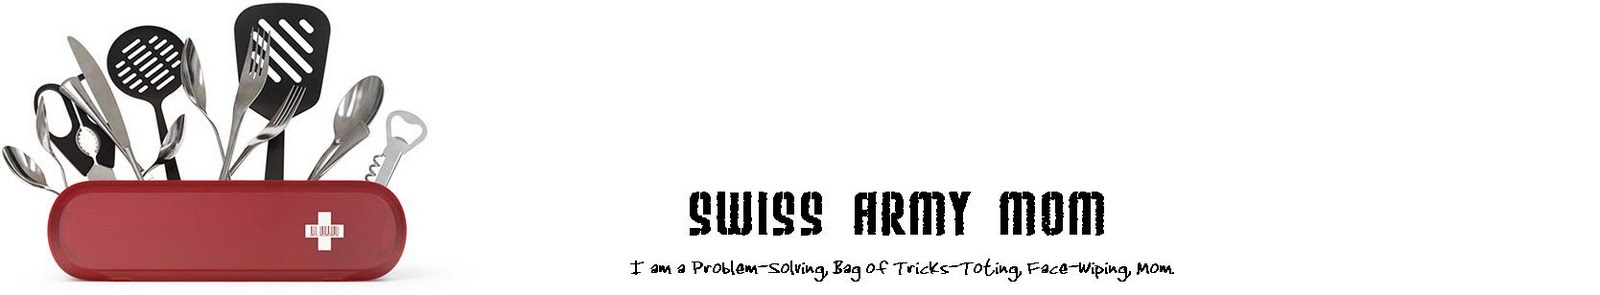 Swiss Army Mom